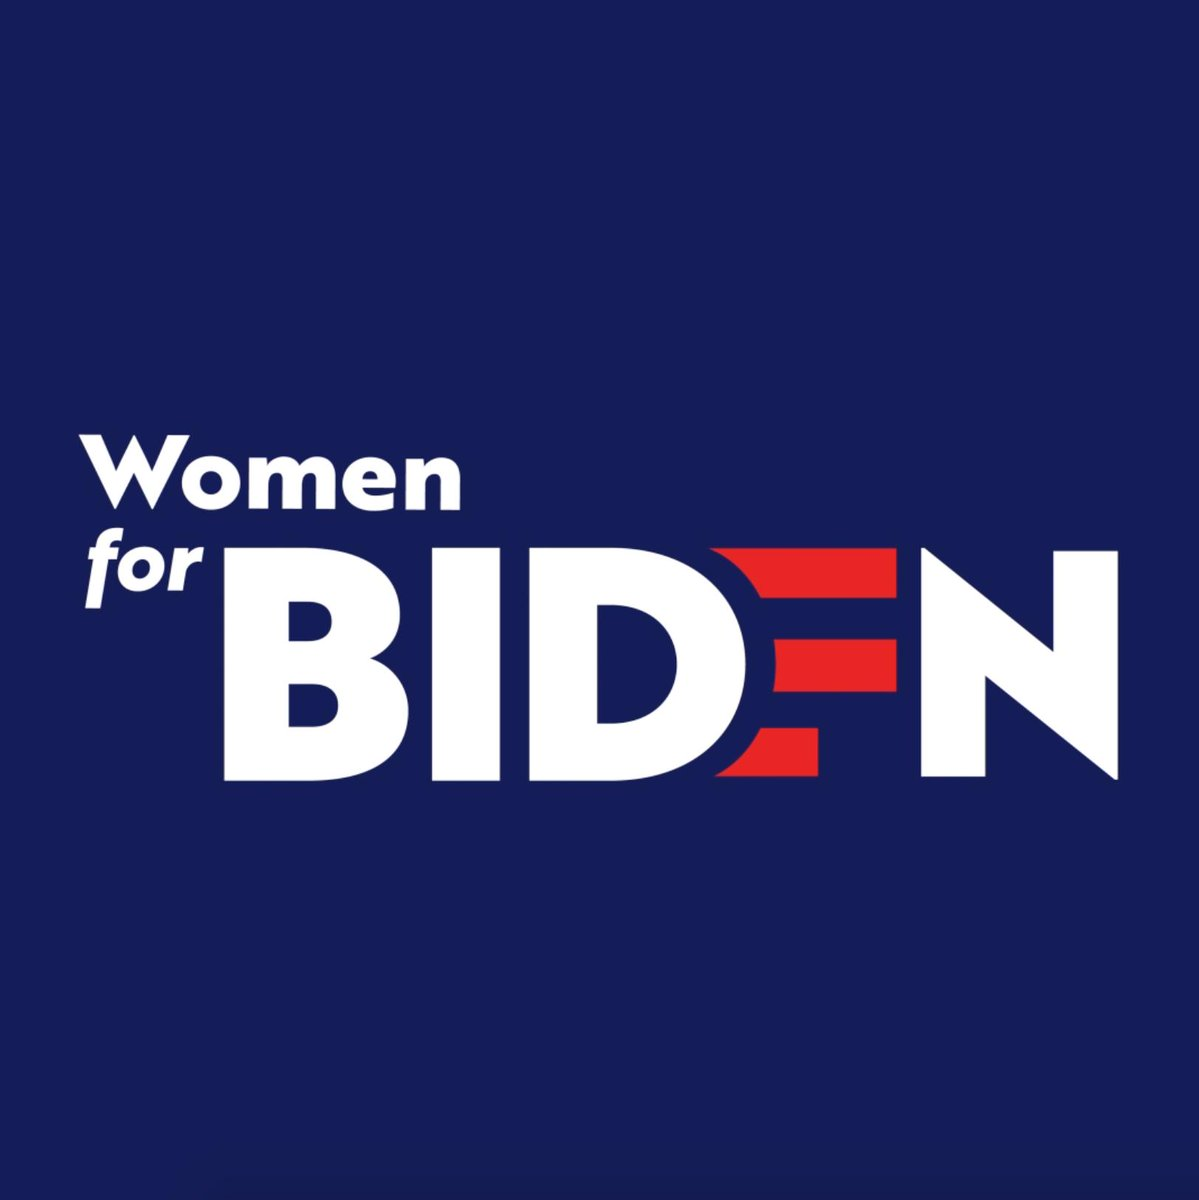 Today, Im proud the campaign is launching Women for Biden. Theres so much at stake in this election — and so much more work to do in the fight for womens health care, paychecks, safety, and families: JoeBiden.com/Women-for-Biden